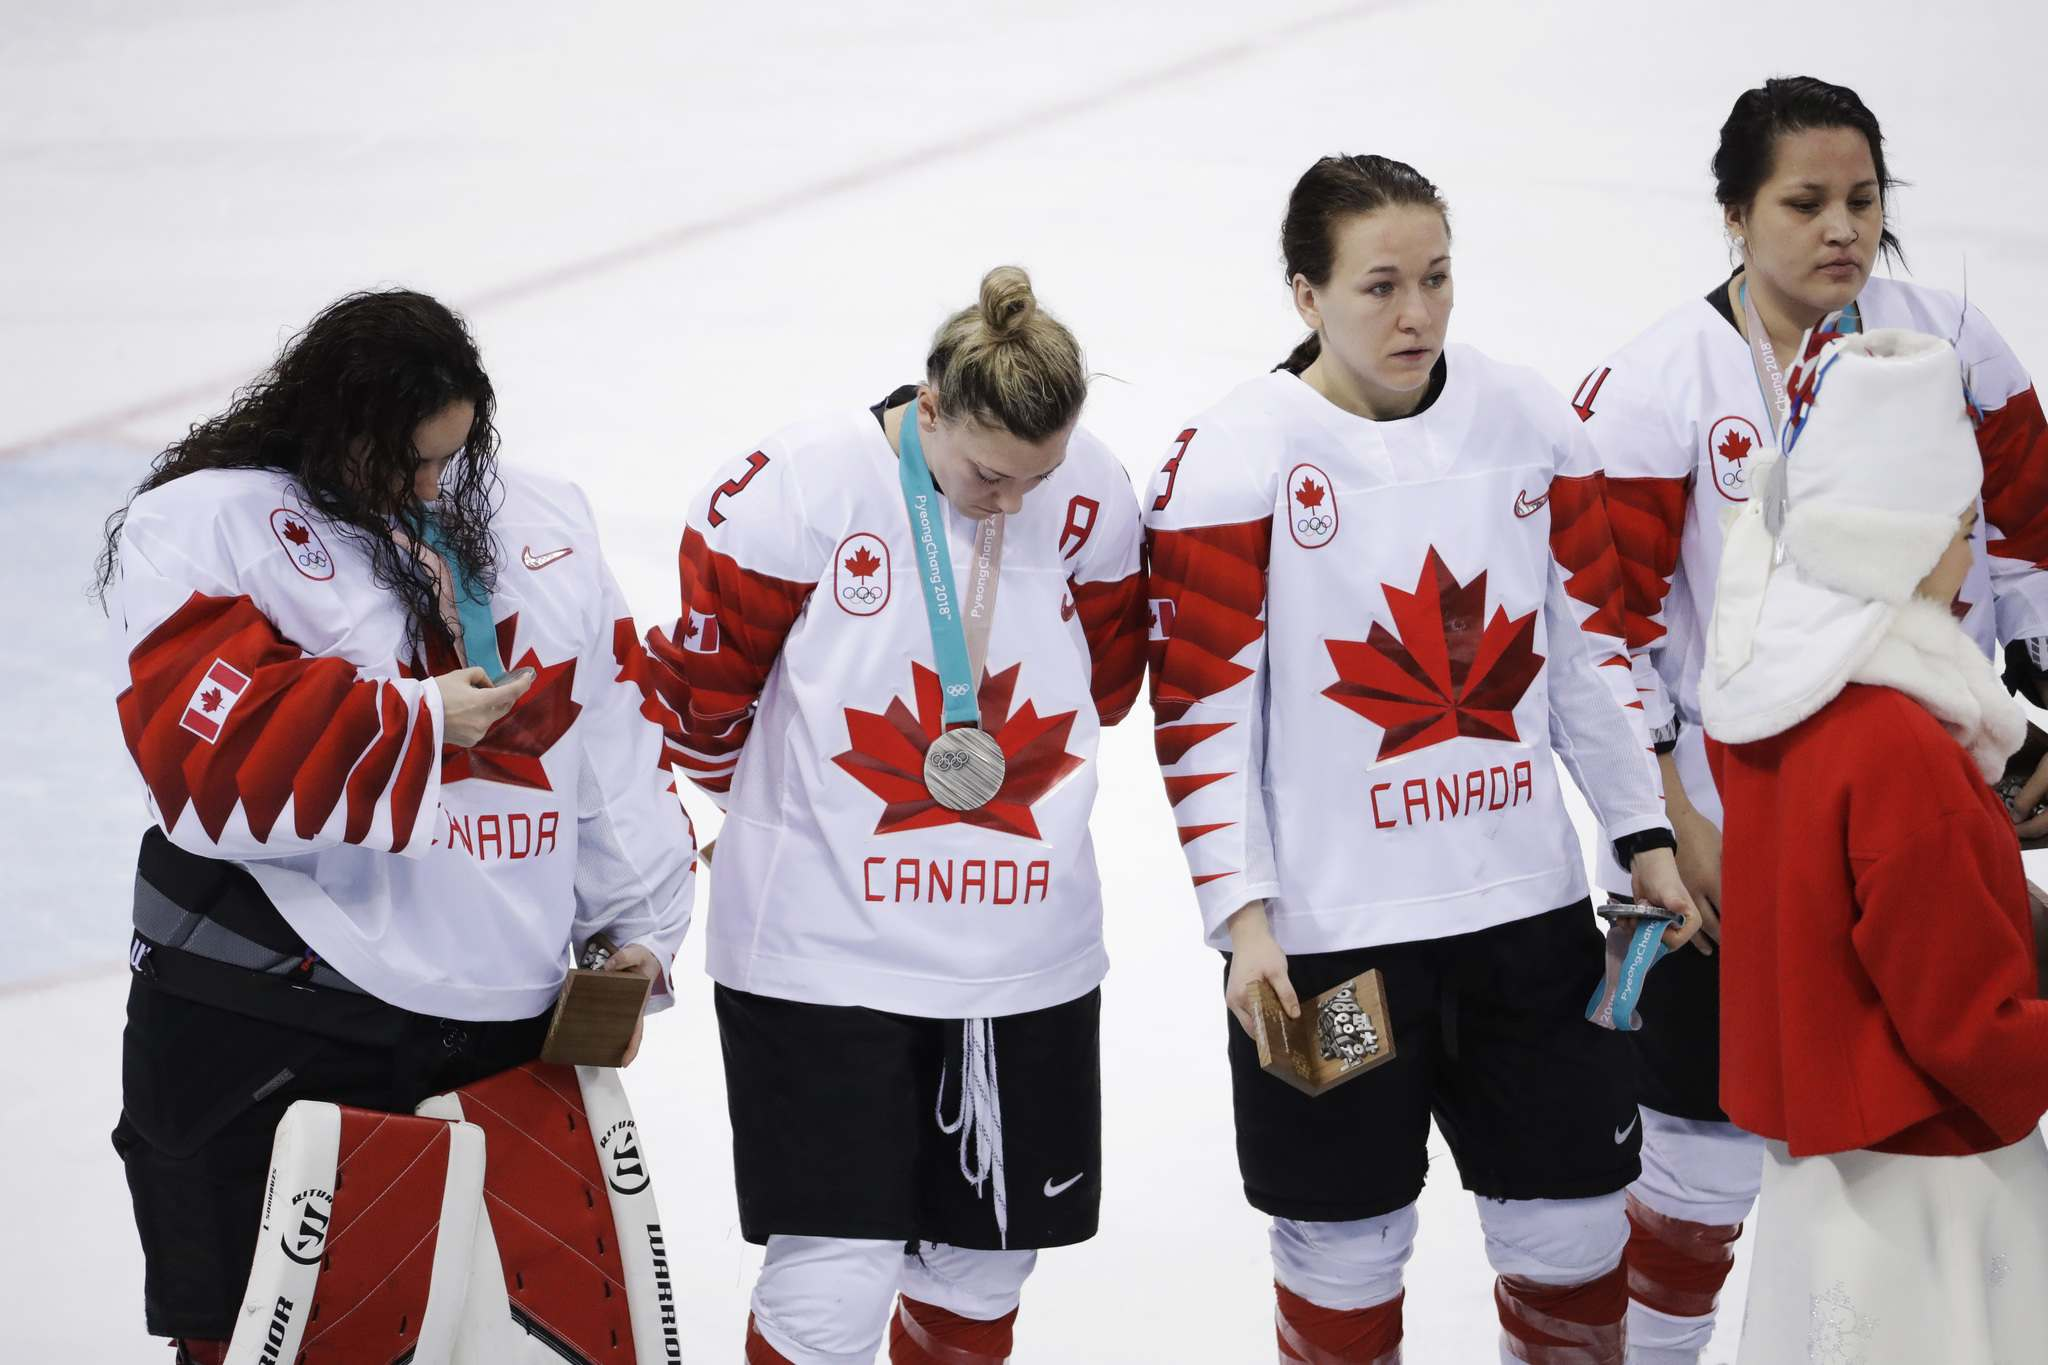 (AP Photo/Matt Slocum)</p><p>Jocelyne Larocque of Canada, third from left, holds her silver medal after losing to the United States in the women's gold medal hockey game at the 2018 Winter Olympics in Gangneung, South Korea, Thursday.</p>